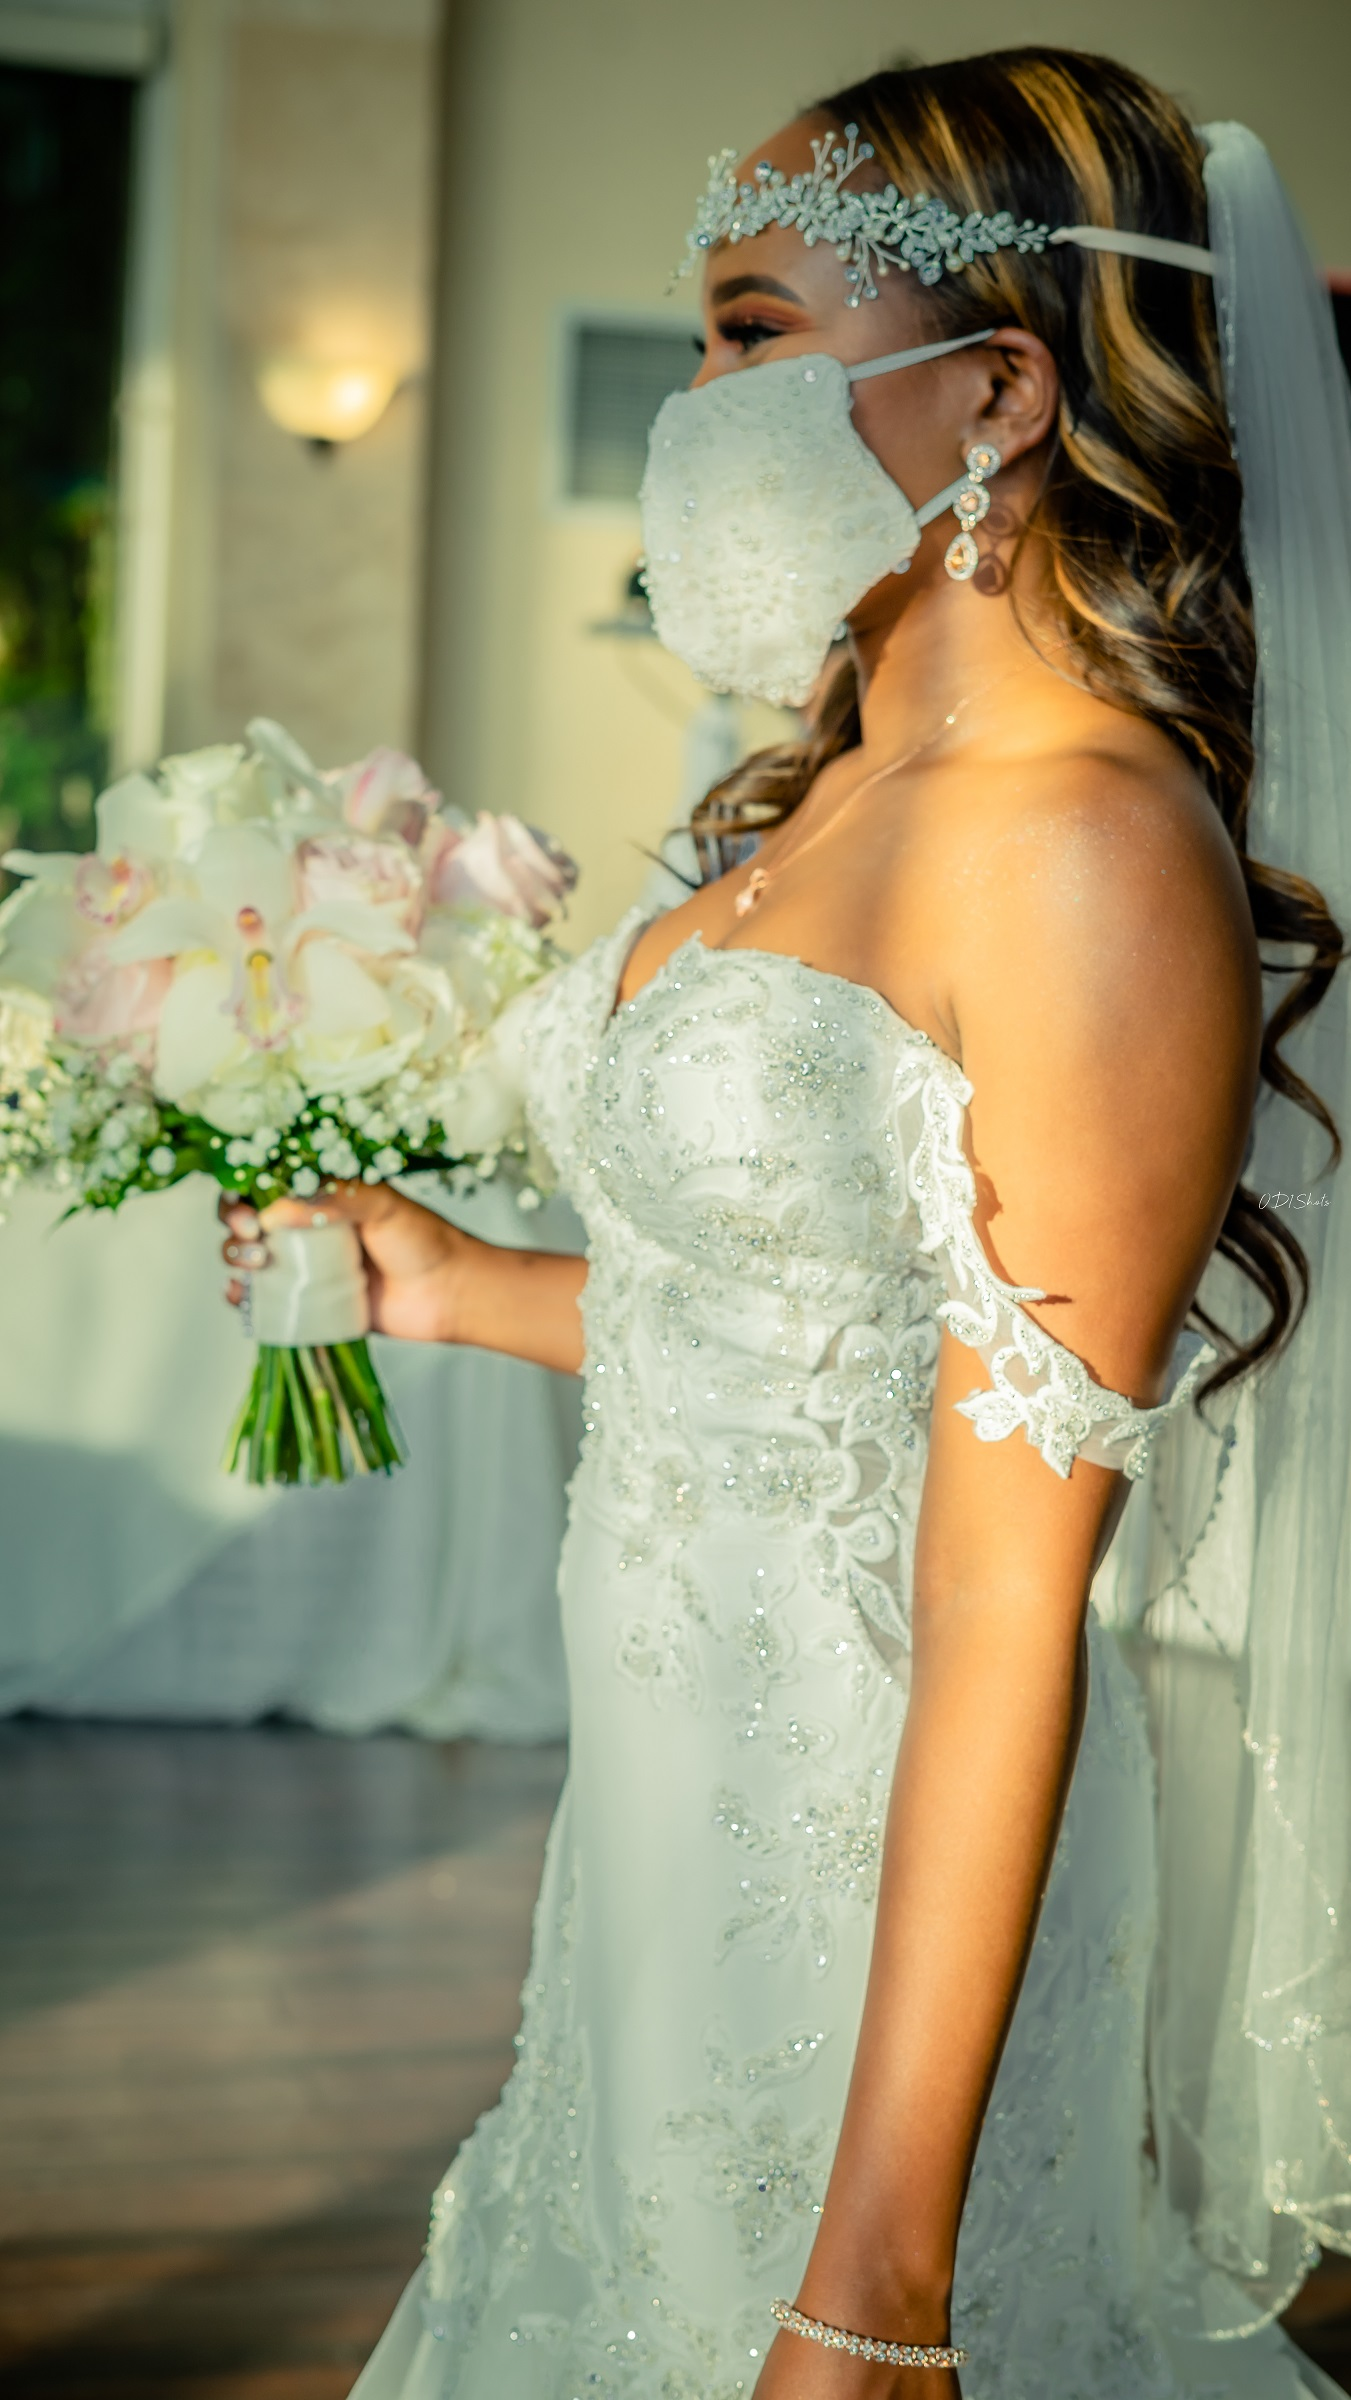 Atlanta Wedding Planning and Event Planning by Kris Lavender